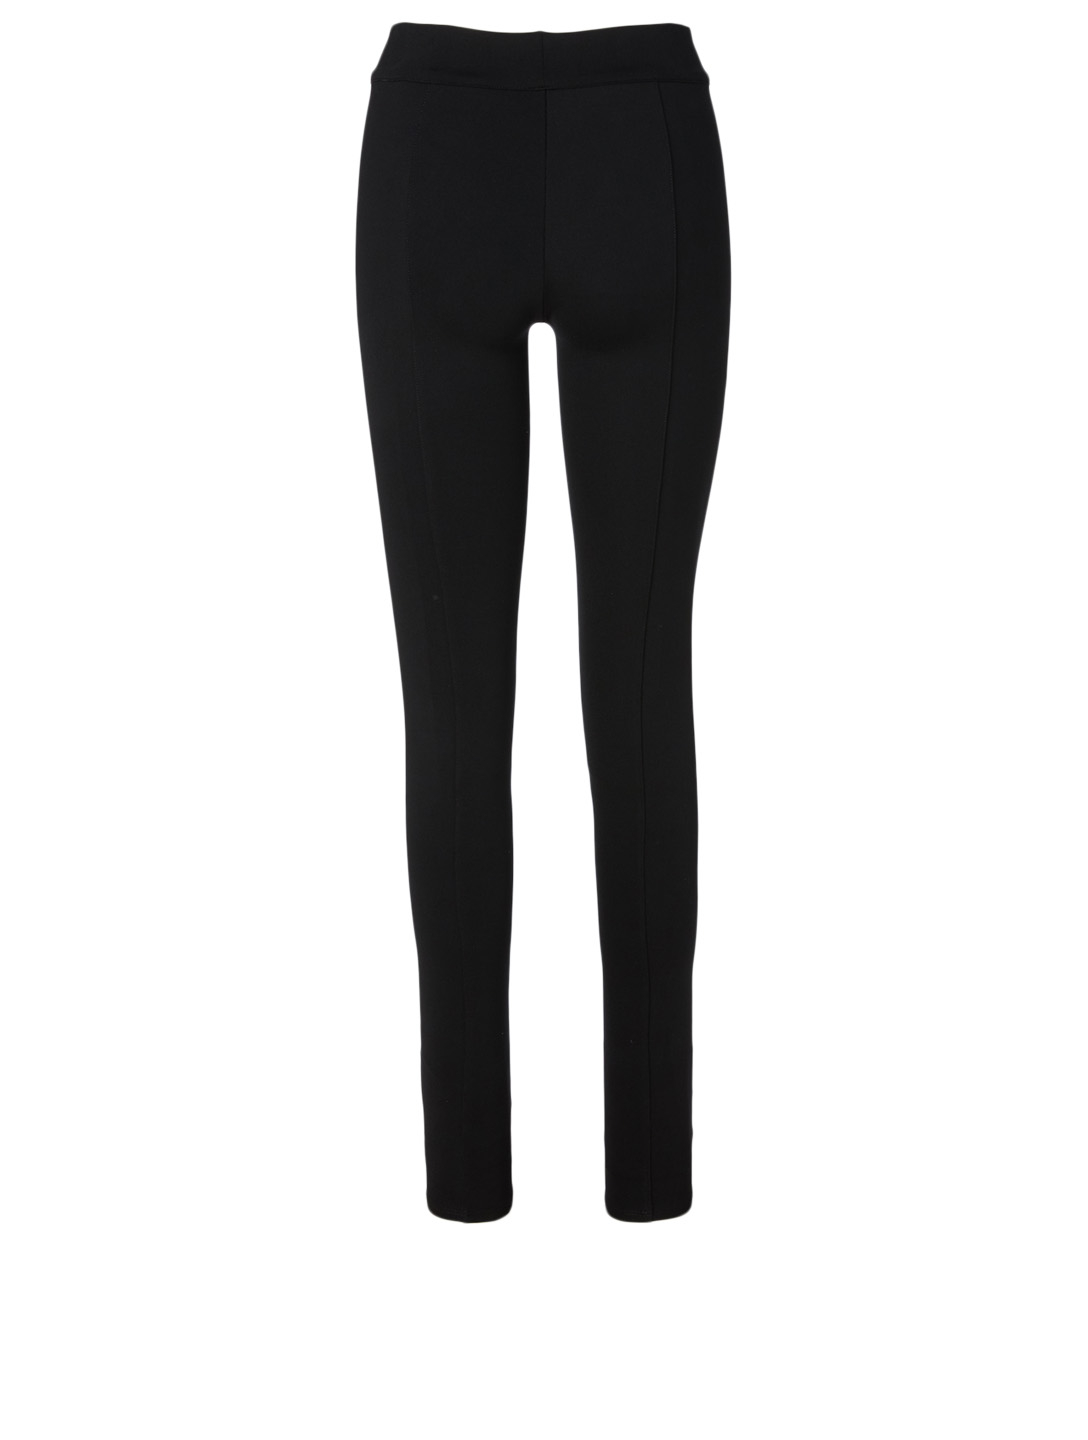 THE ROW Relma Scuba Pants Women's Black